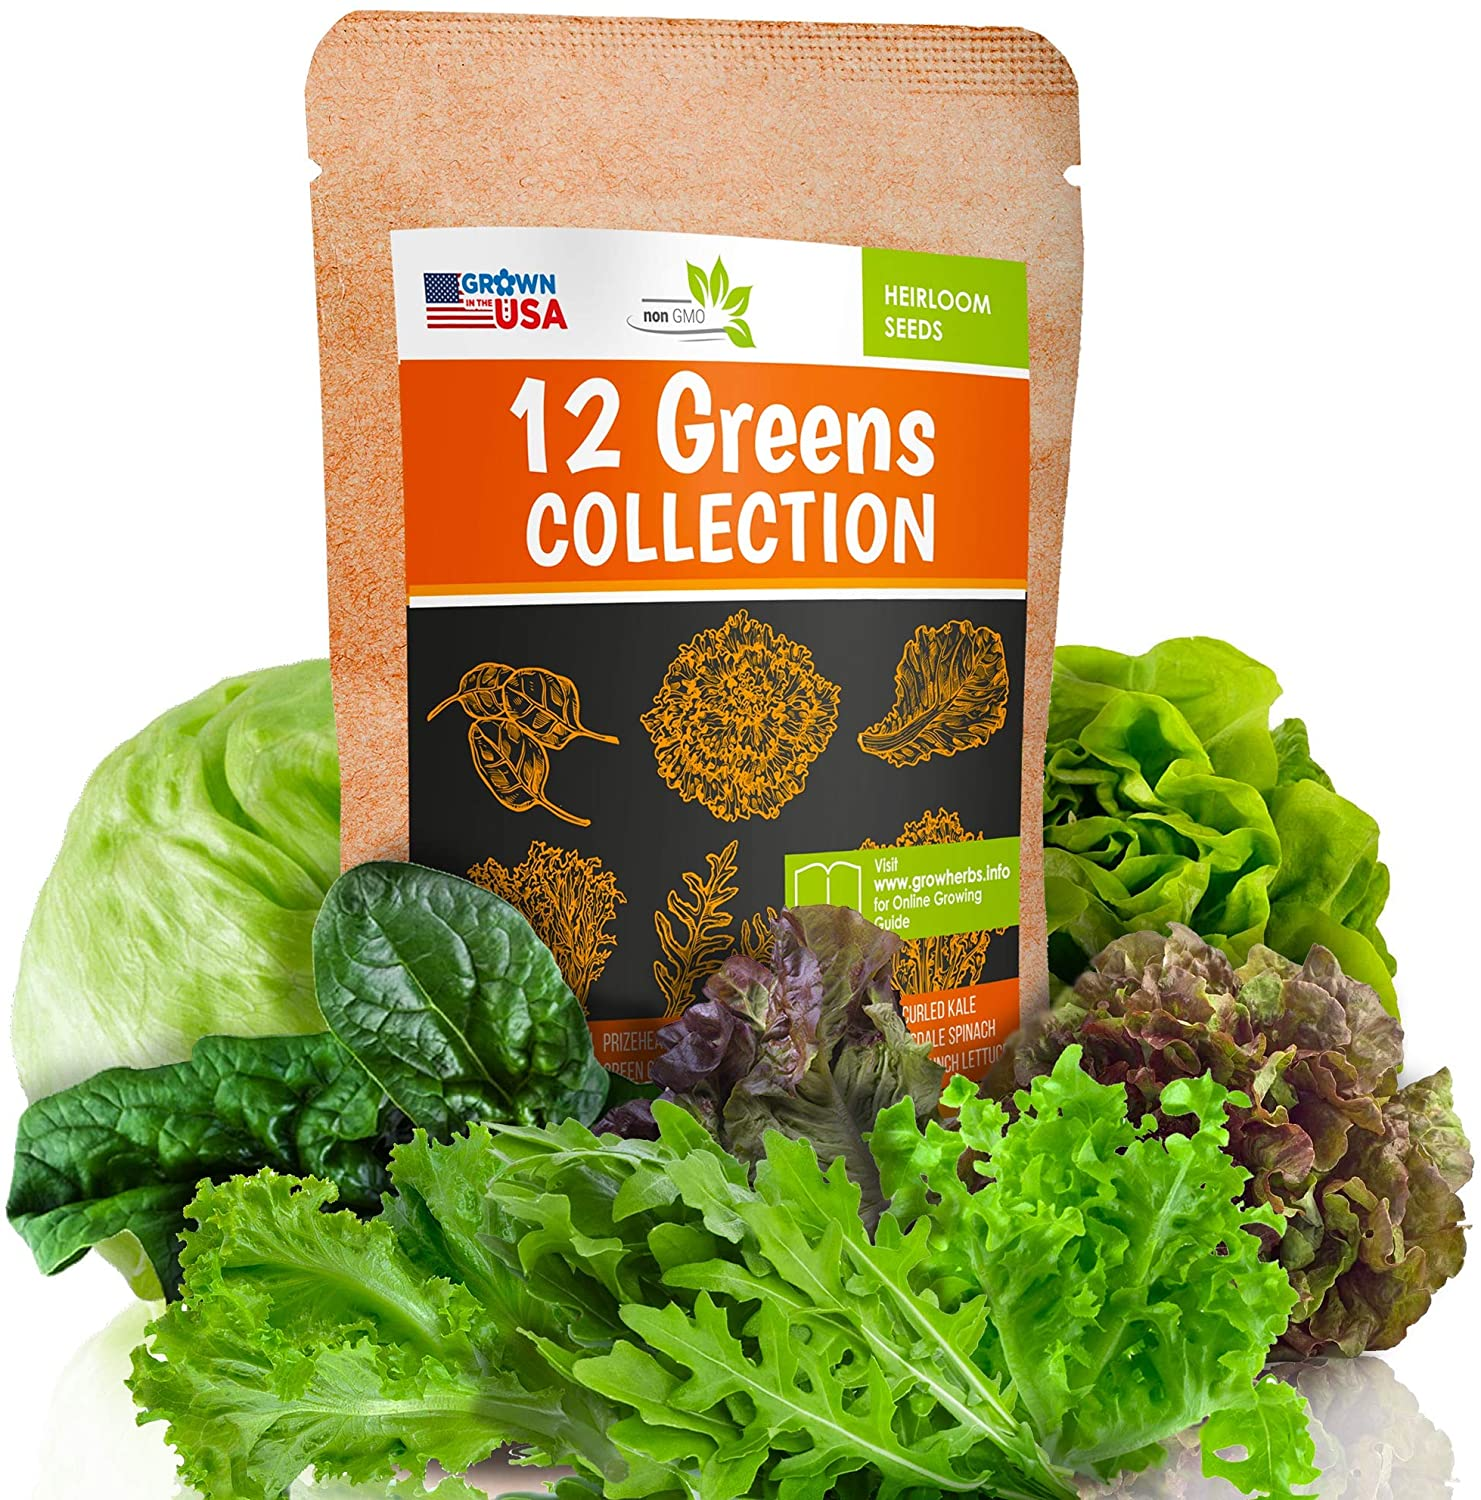 12 Lettuce and Greens Seed Pack - Heirloom and Non GMO, Grown in USA - Indoor or Outdoor Garden - Iceberg, Arugula, Kale, Spinach, Bibb, Butter, Green Oakleaf, Giant Collard, Red Romaine & More